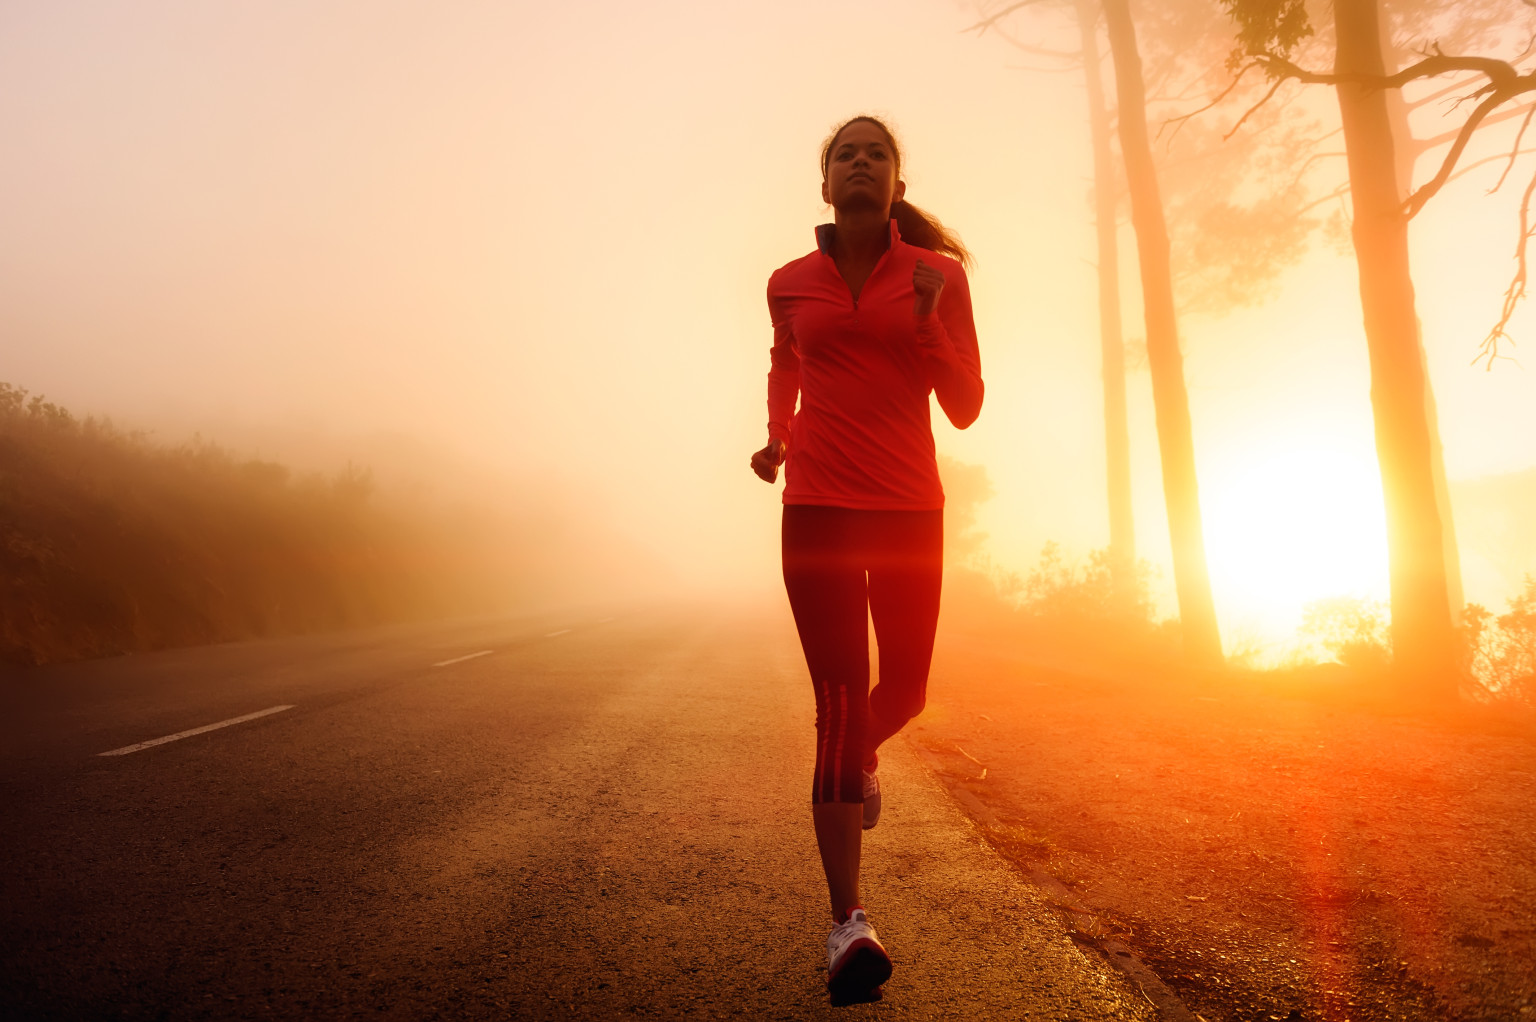 Most effective weight loss exercise and when to do it